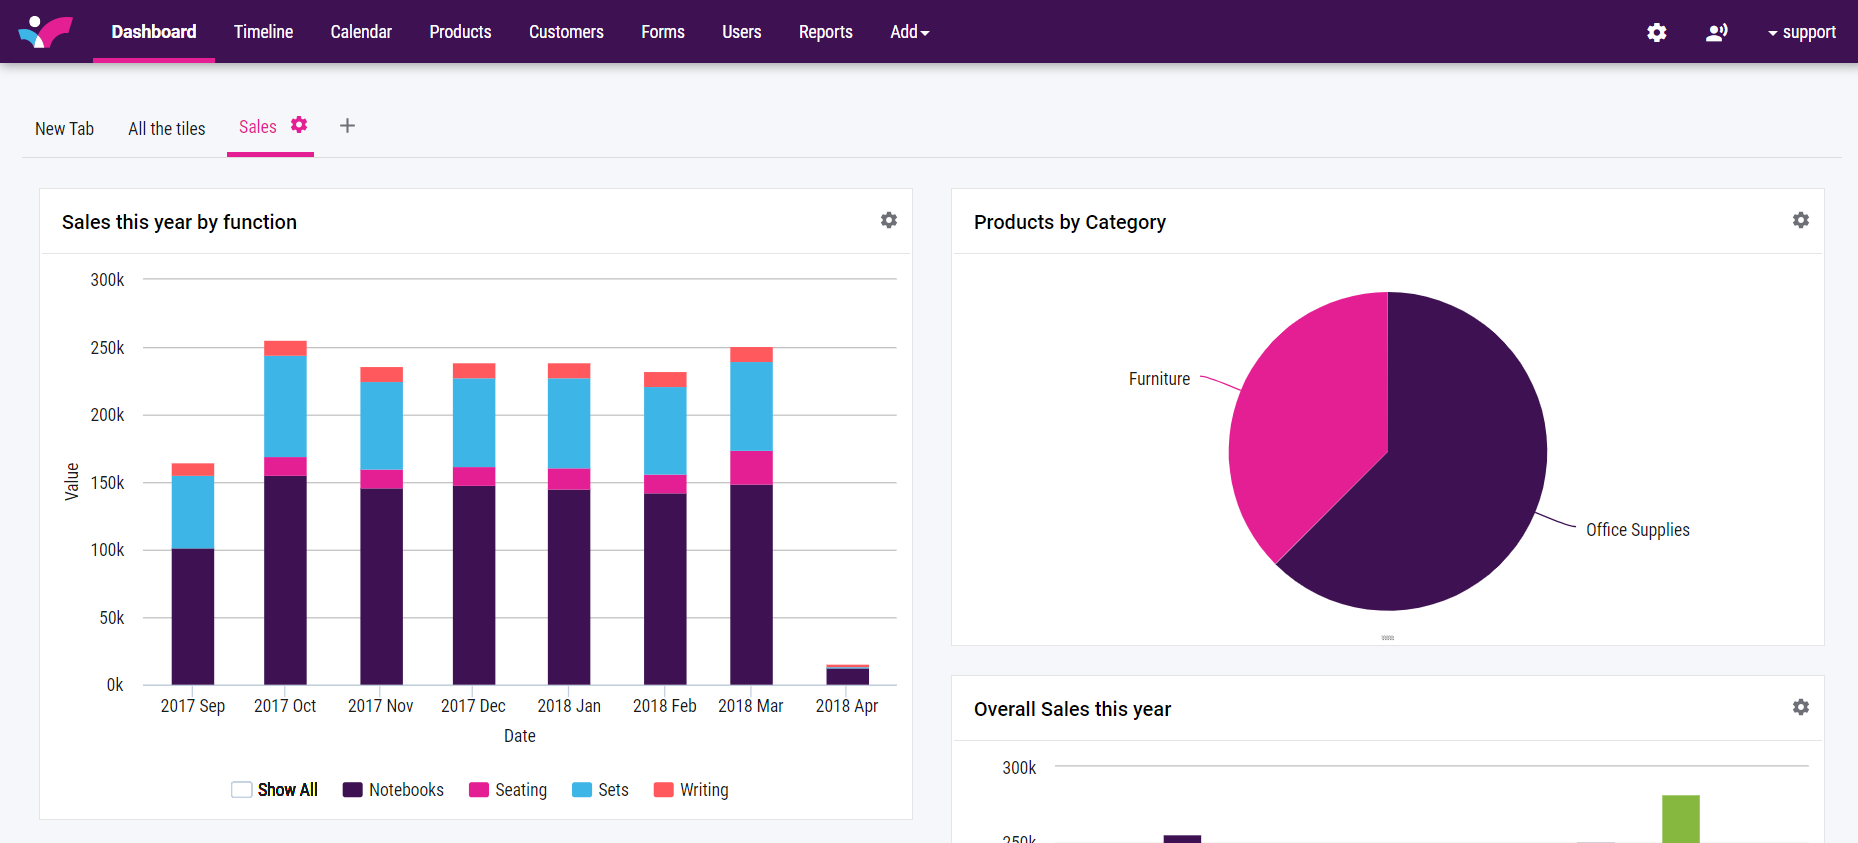 The Skynamo dashboard includes standard and customisable reports, enabling management to make informed business decisions based on data captured by sales reps